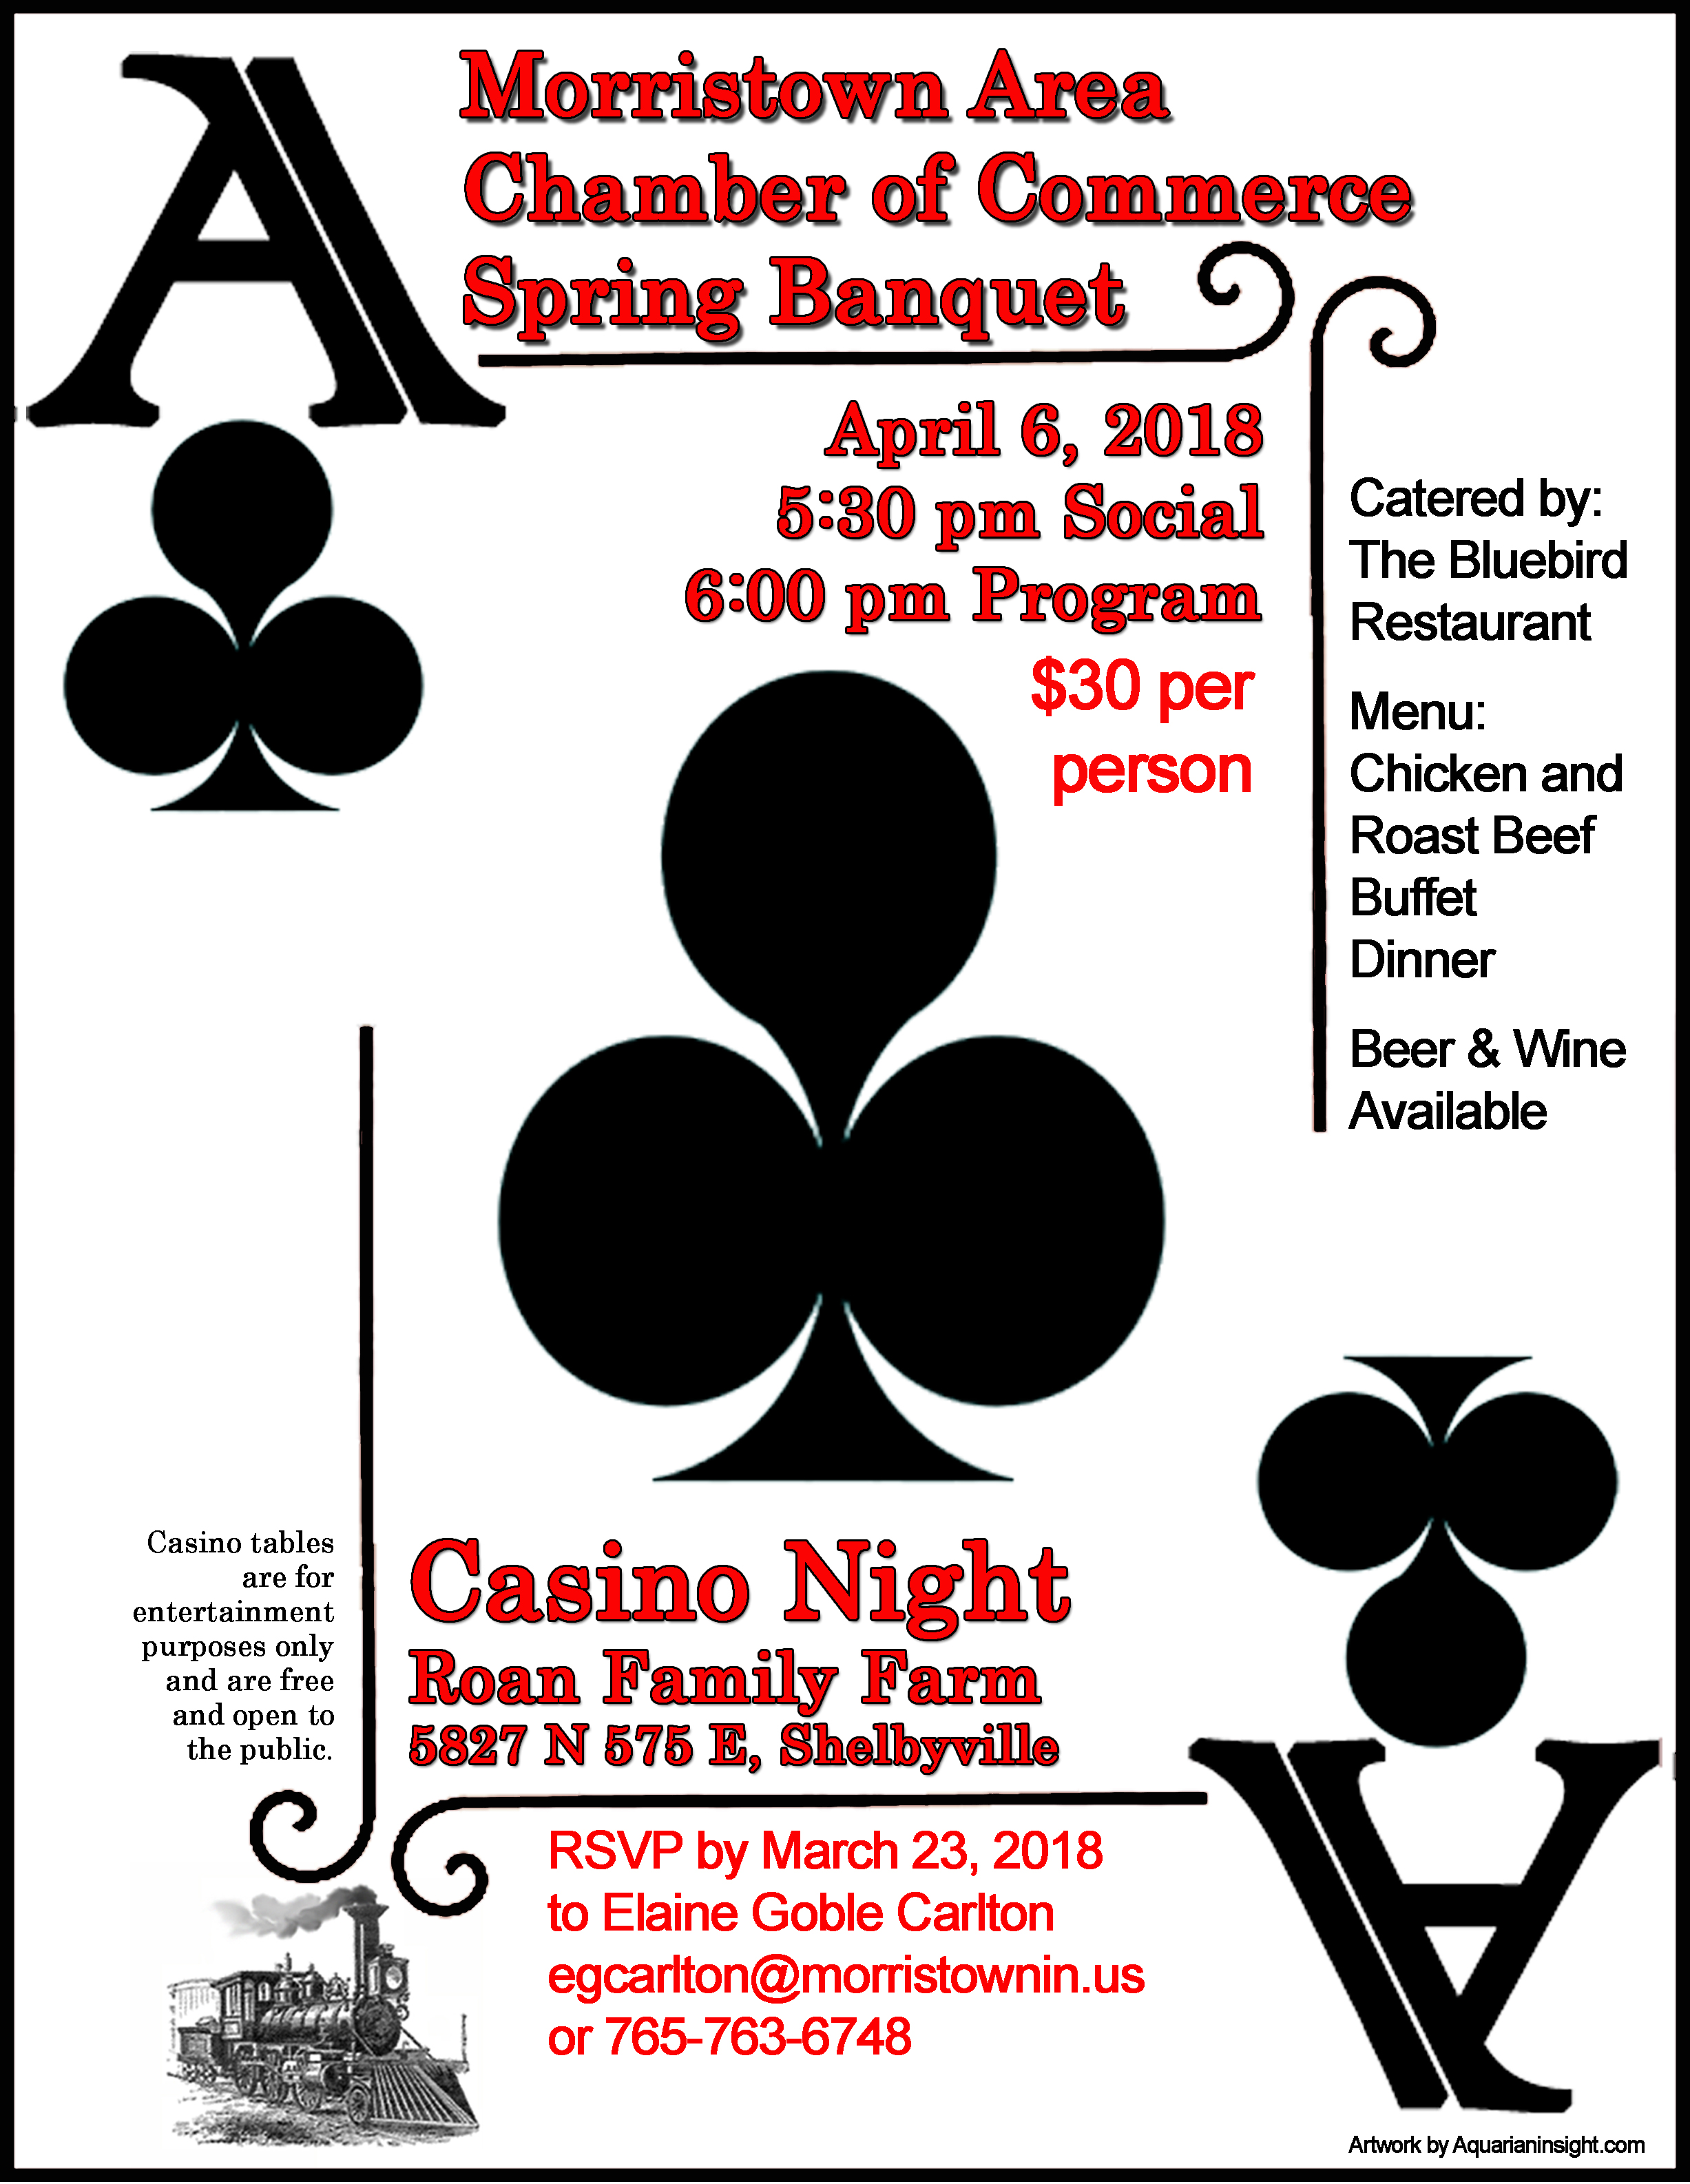 Morristown chamber of commerce spring banquet rsvp still you may still rsvp for the morristown chamber spring banquet casino night we will be taking rsvps until wednesday april 4th stopboris Gallery